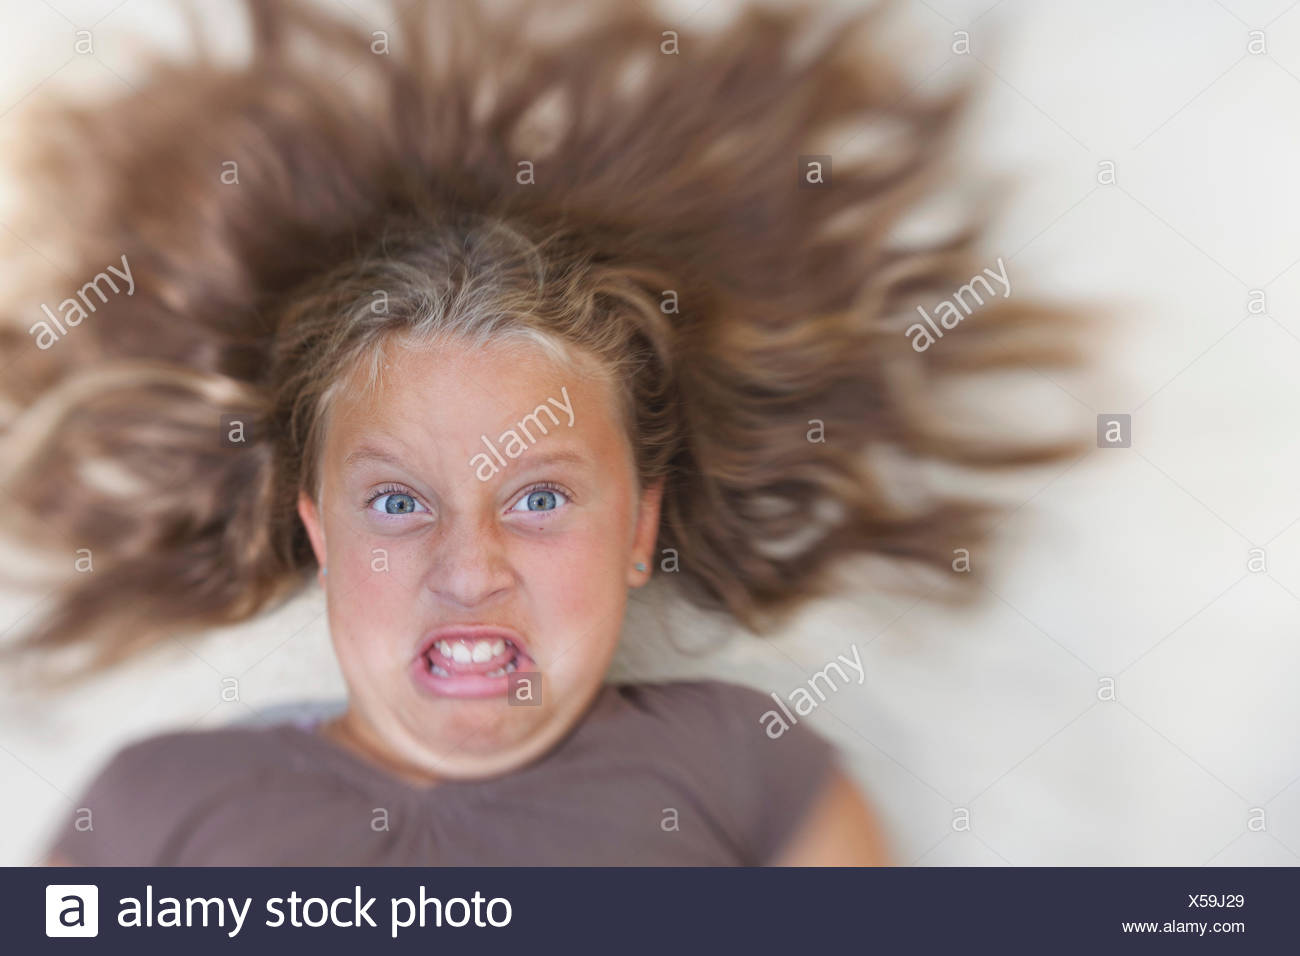 USA, Maryland, Howard County, Dayton, Girl (8-9) with tousled blond hair making a face - Stock Image